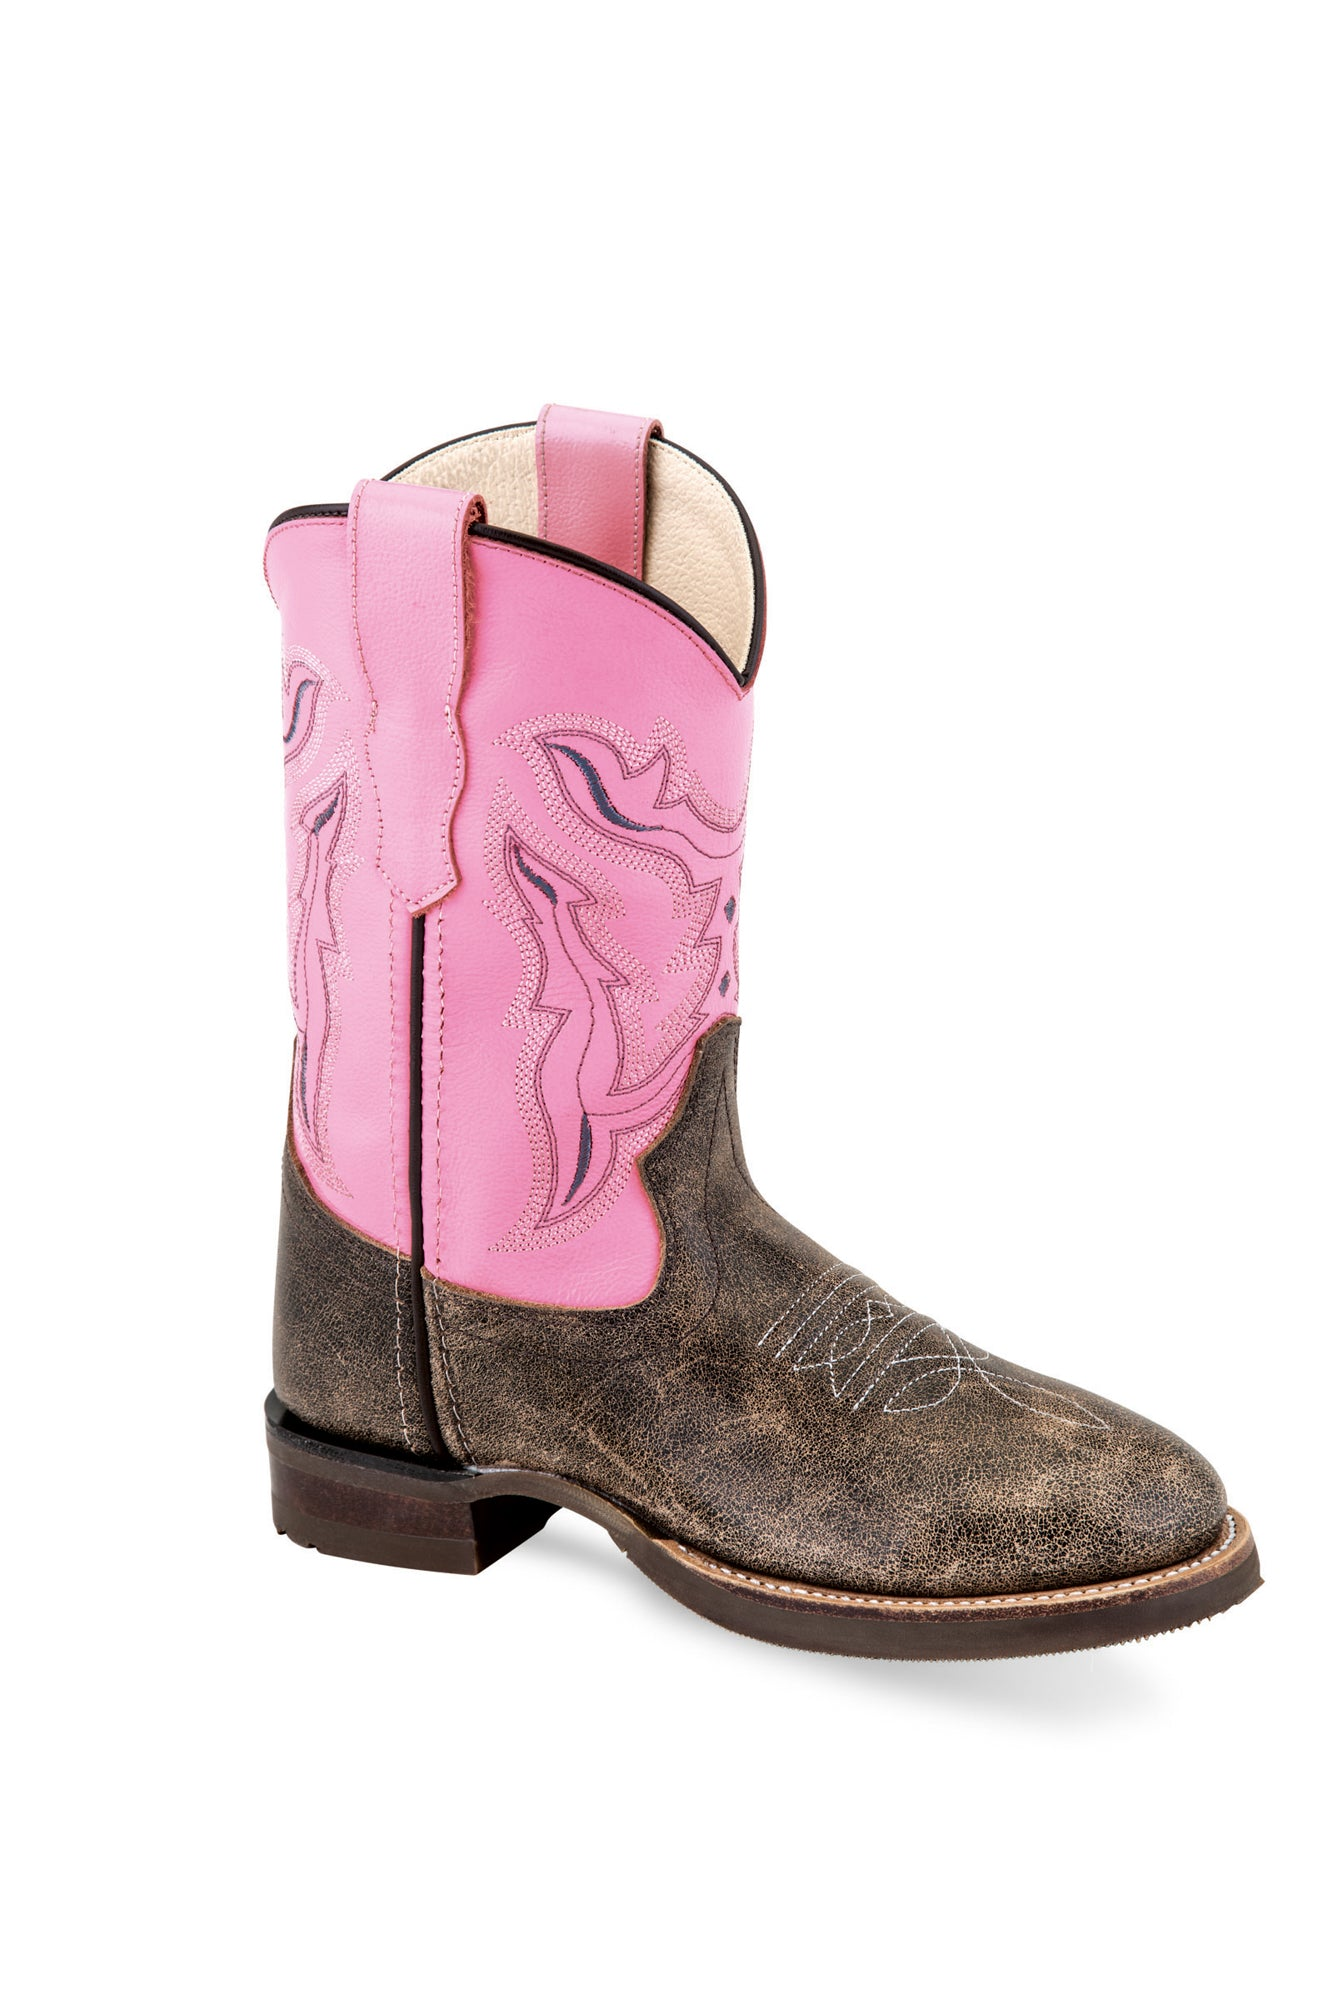 7e770aa5e3c Old West Pink/Brown Kids Girls Leather Cowboy Boots